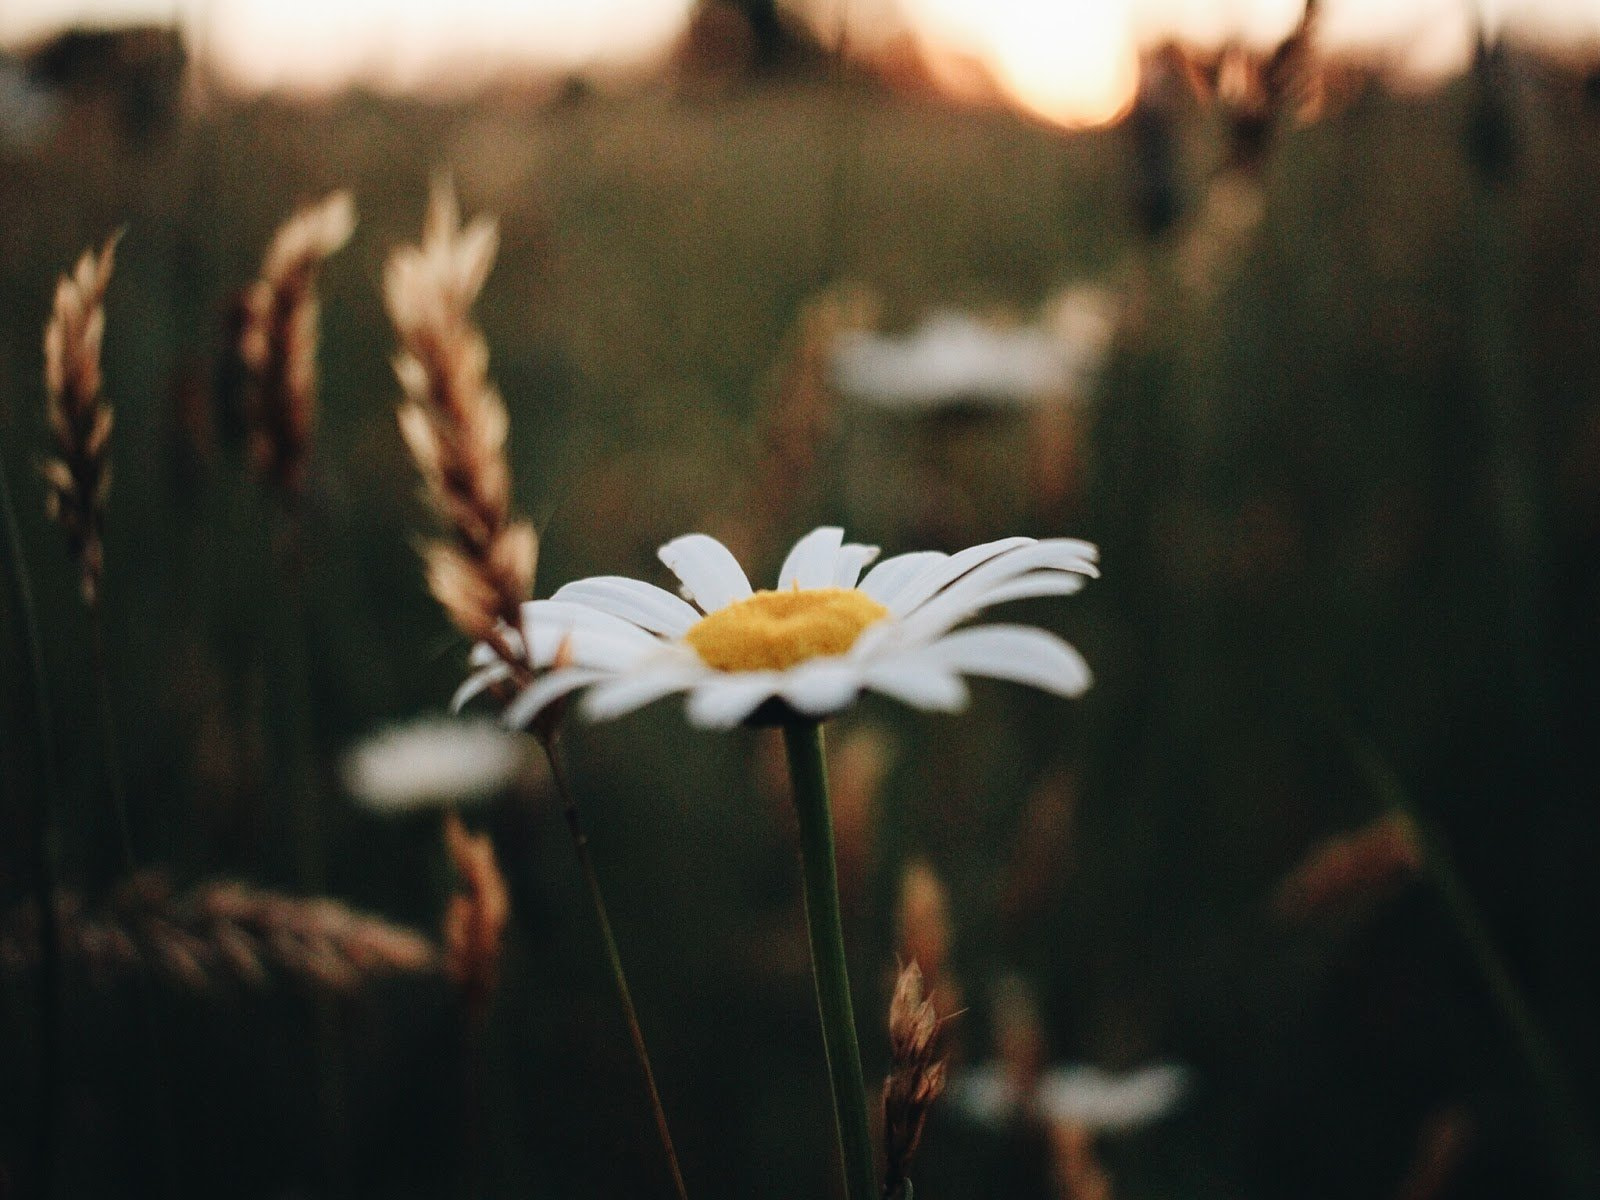 Daisy photo by Madison Bersuch